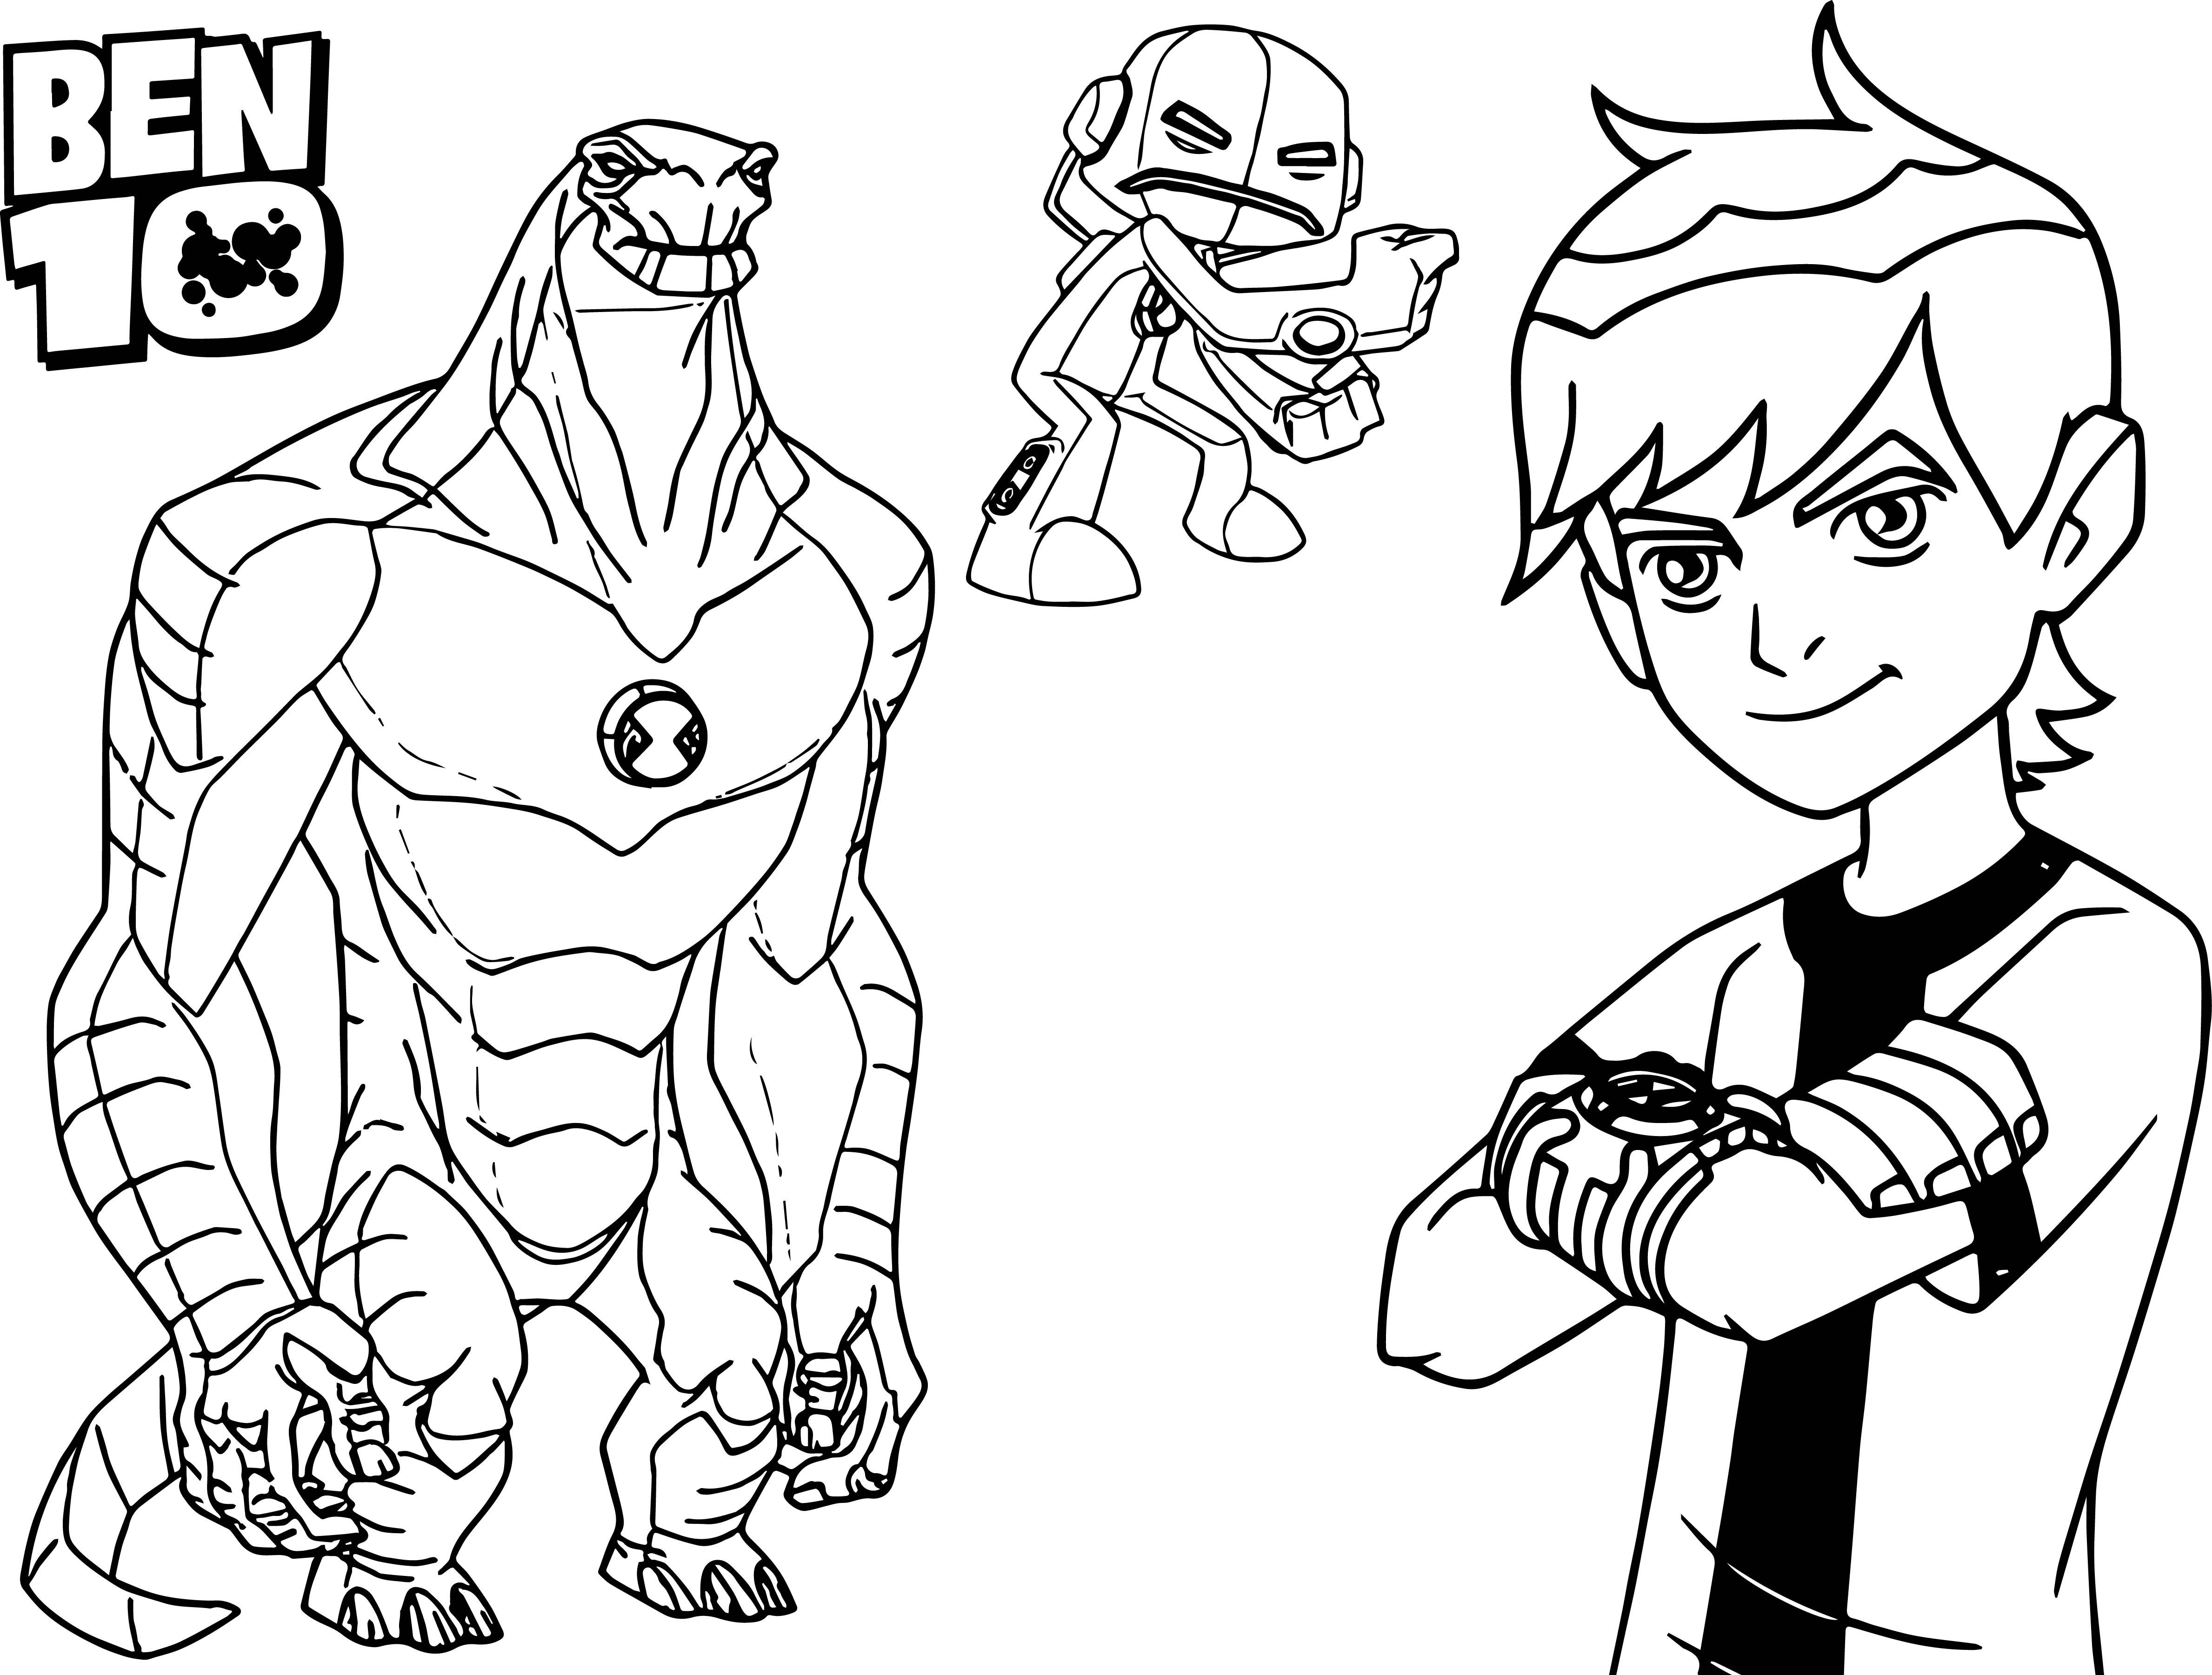 ben 10 for coloring free printable ben 10 coloring pages for kids jeffersonclan coloring for ben 10